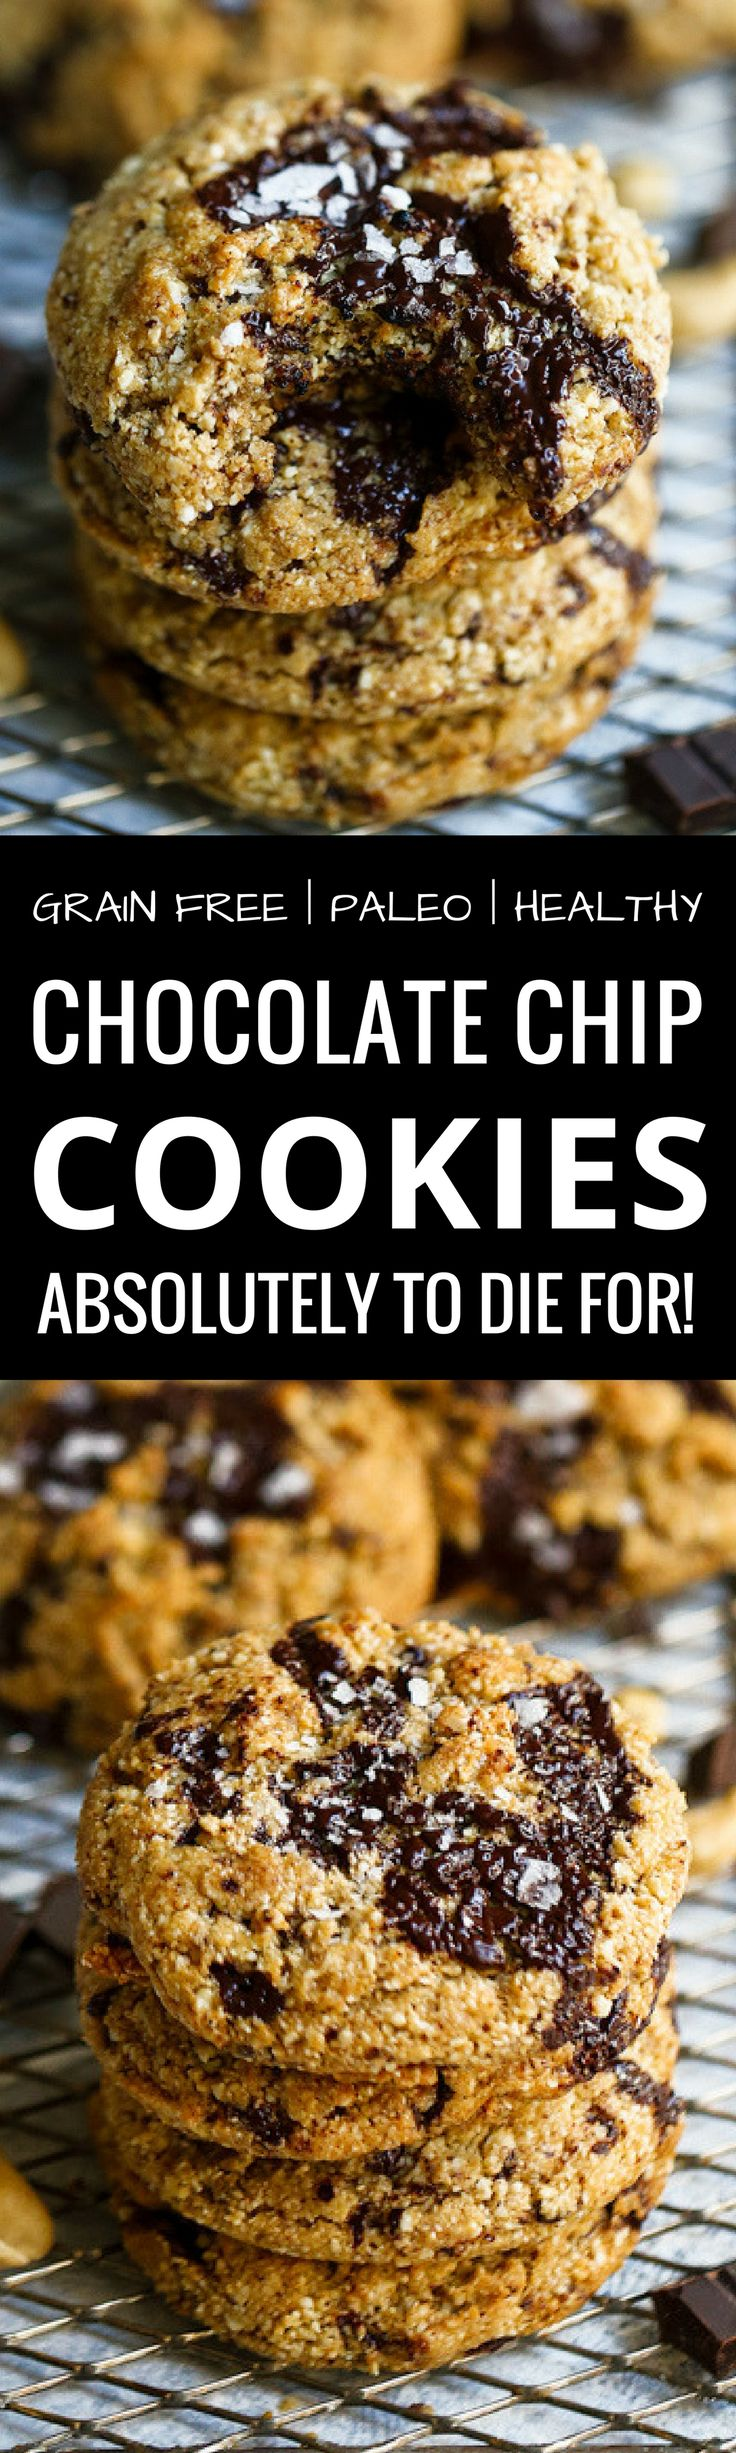 5 Minute Paleo Chocolate Chip Cookies. Made with dark chocolate, raw cashews and melted ghee. So delicious and freeze well, too. Paleo desserts!